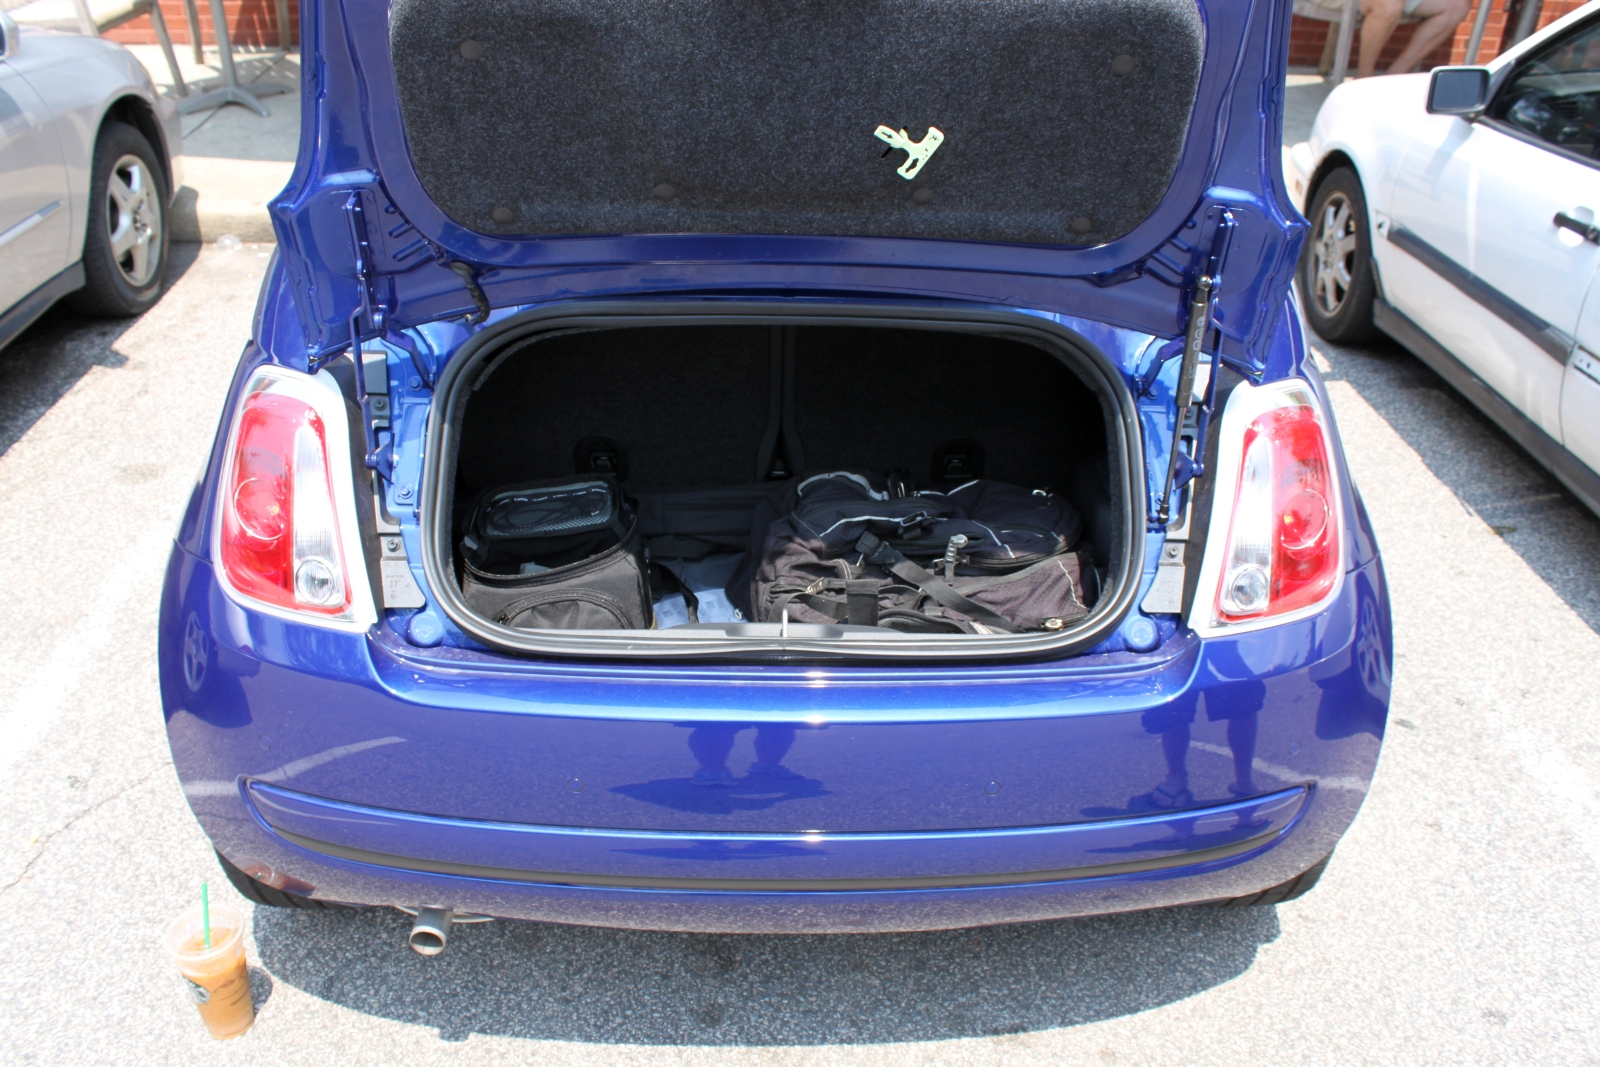 Fiat 500 Abarth Trunk 2012 Fiat 500C Review